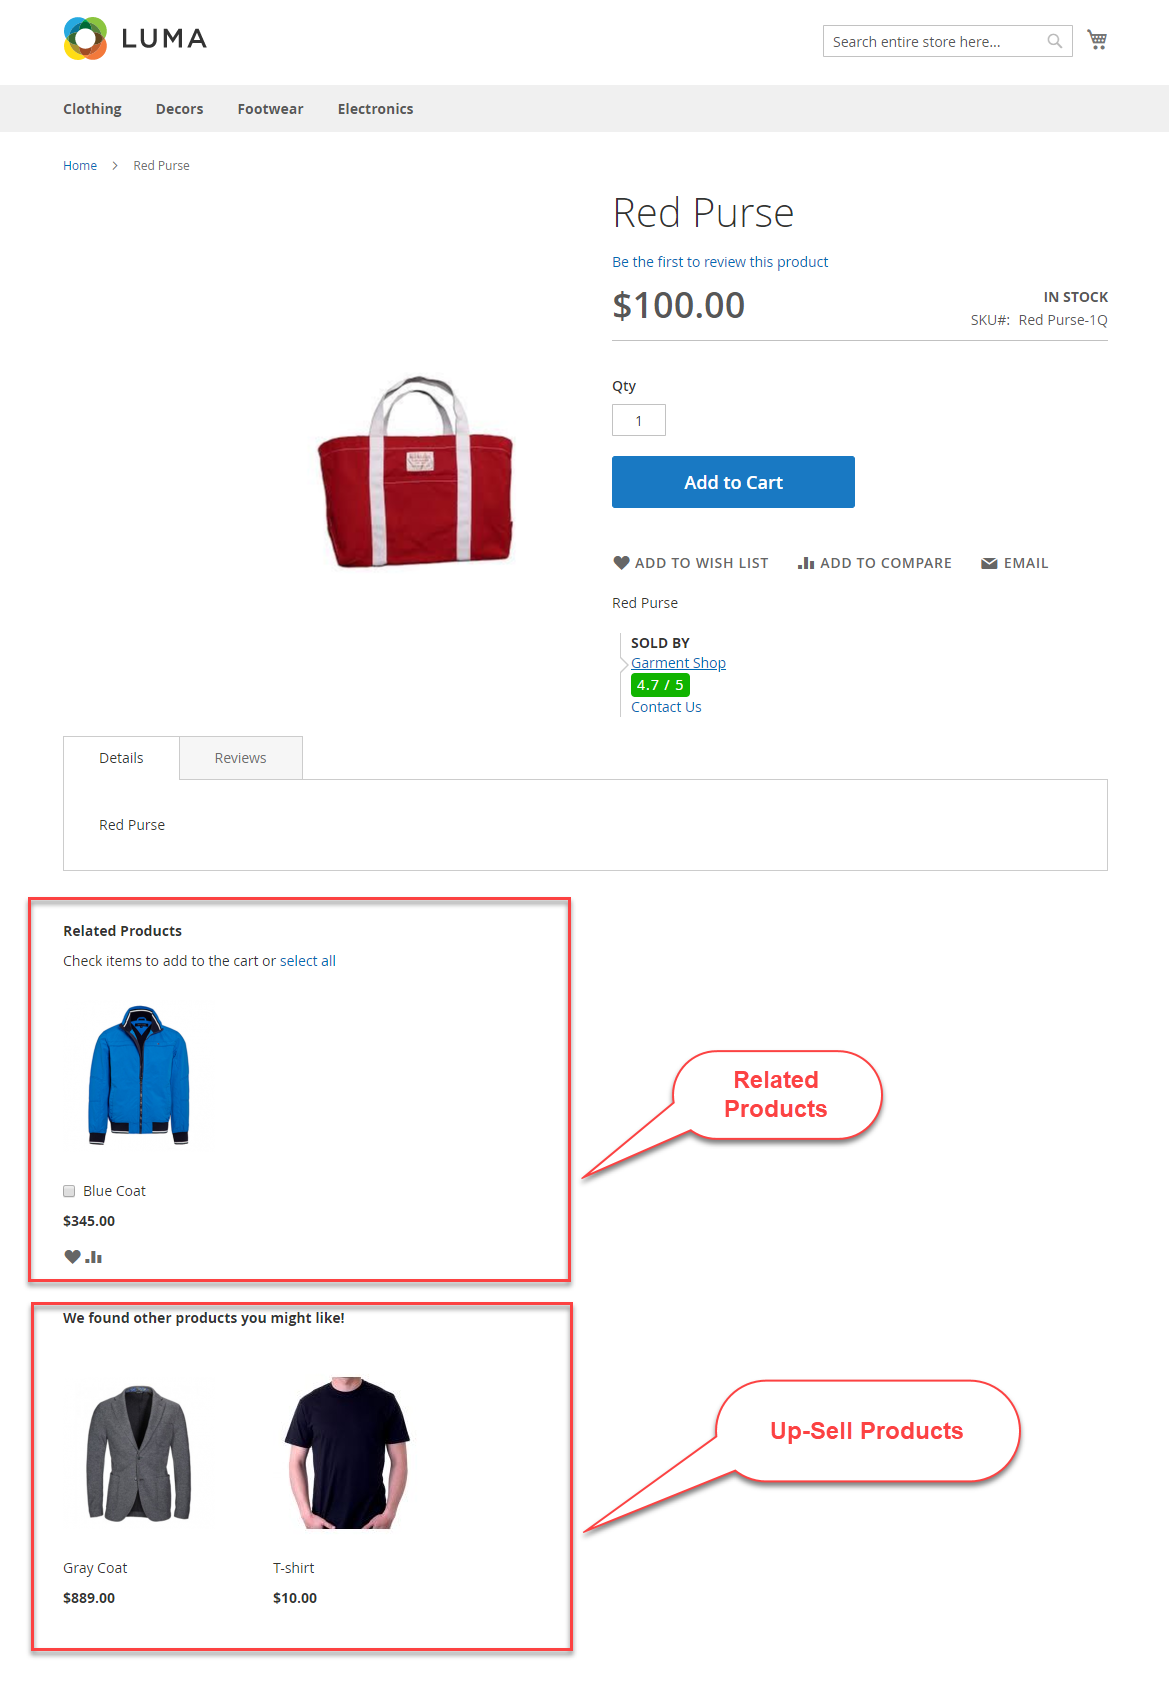 sellers add related products